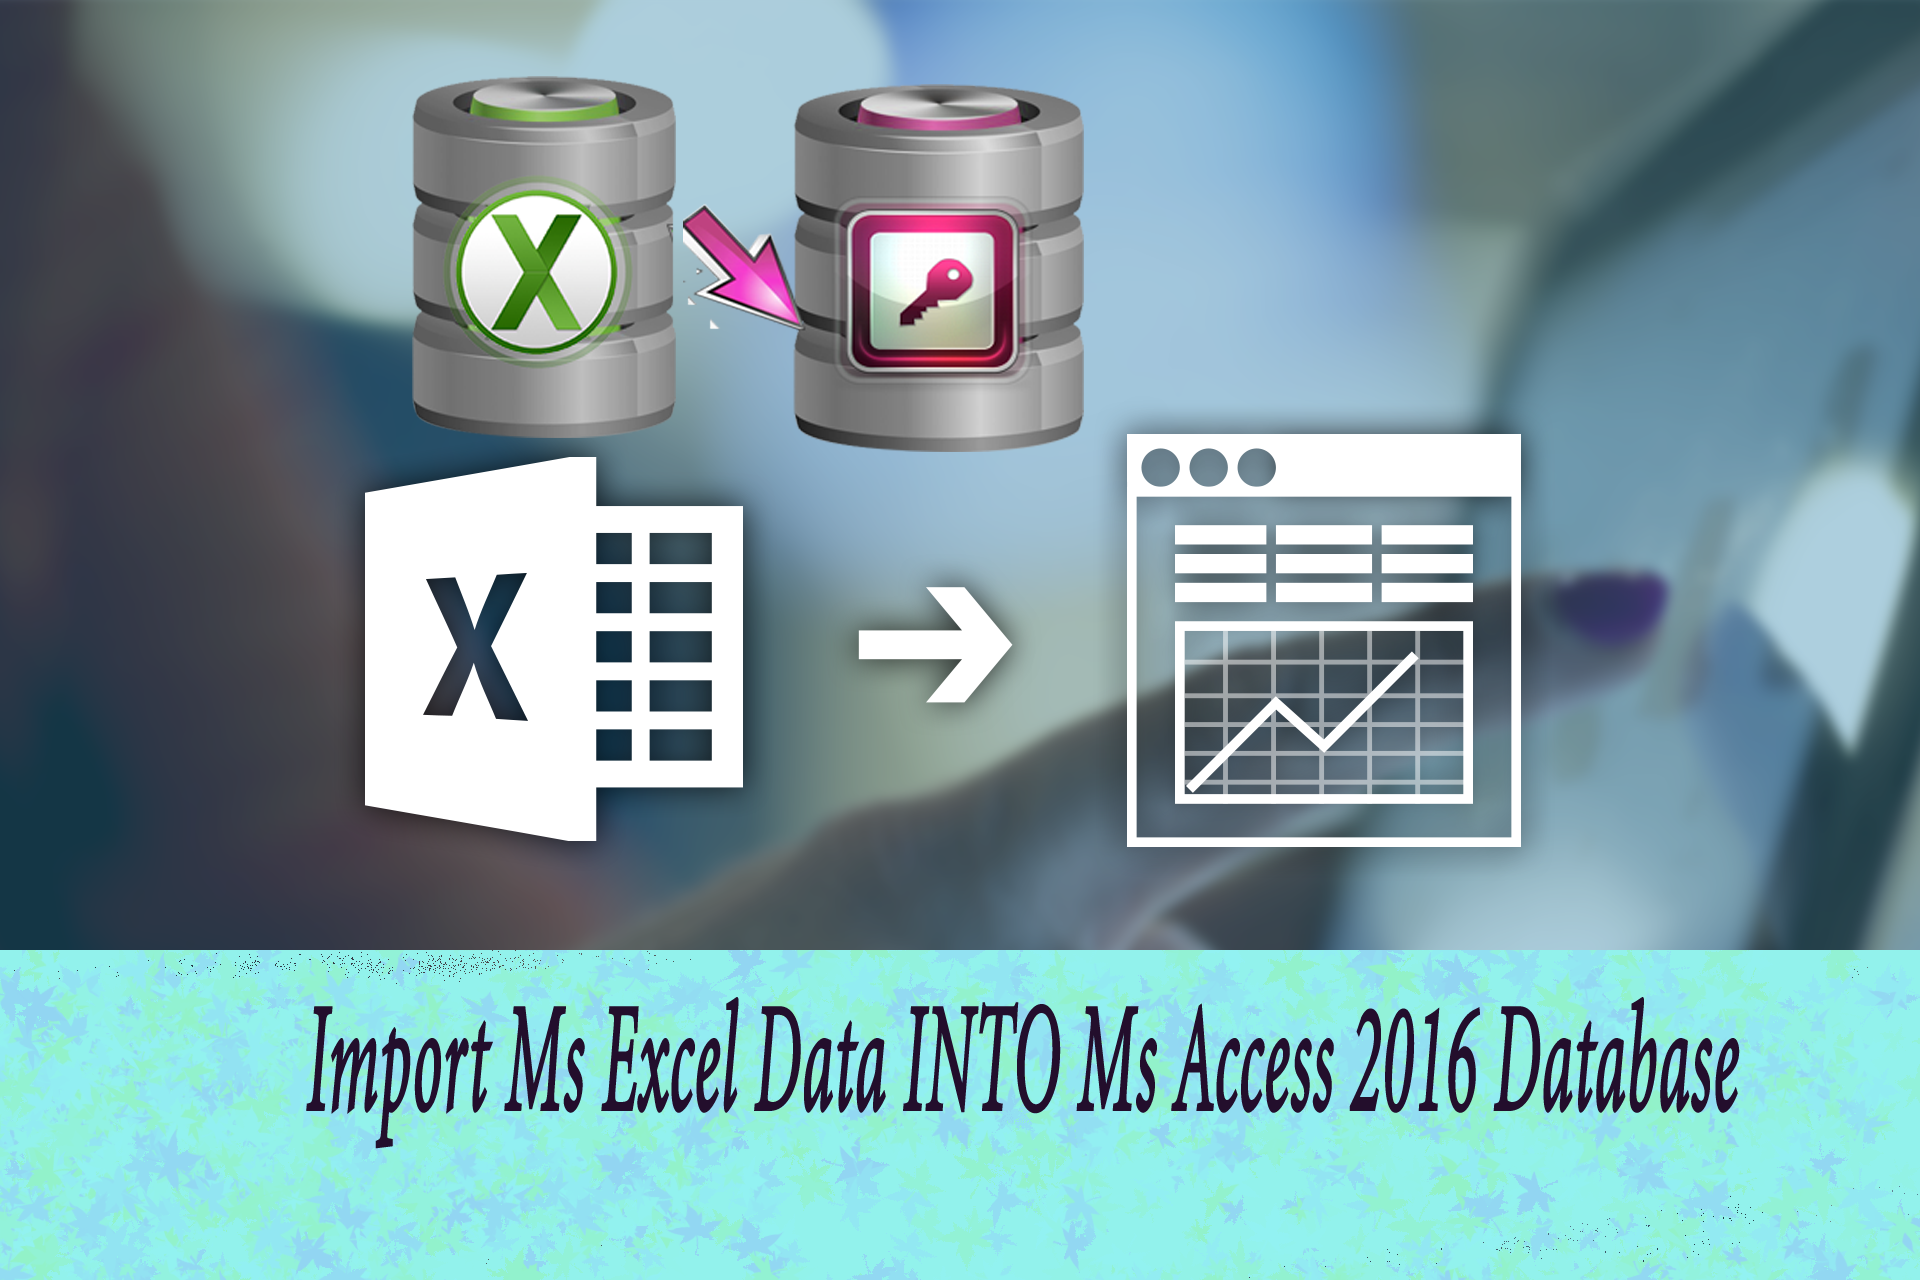 Import MS Excel Data into MS Access